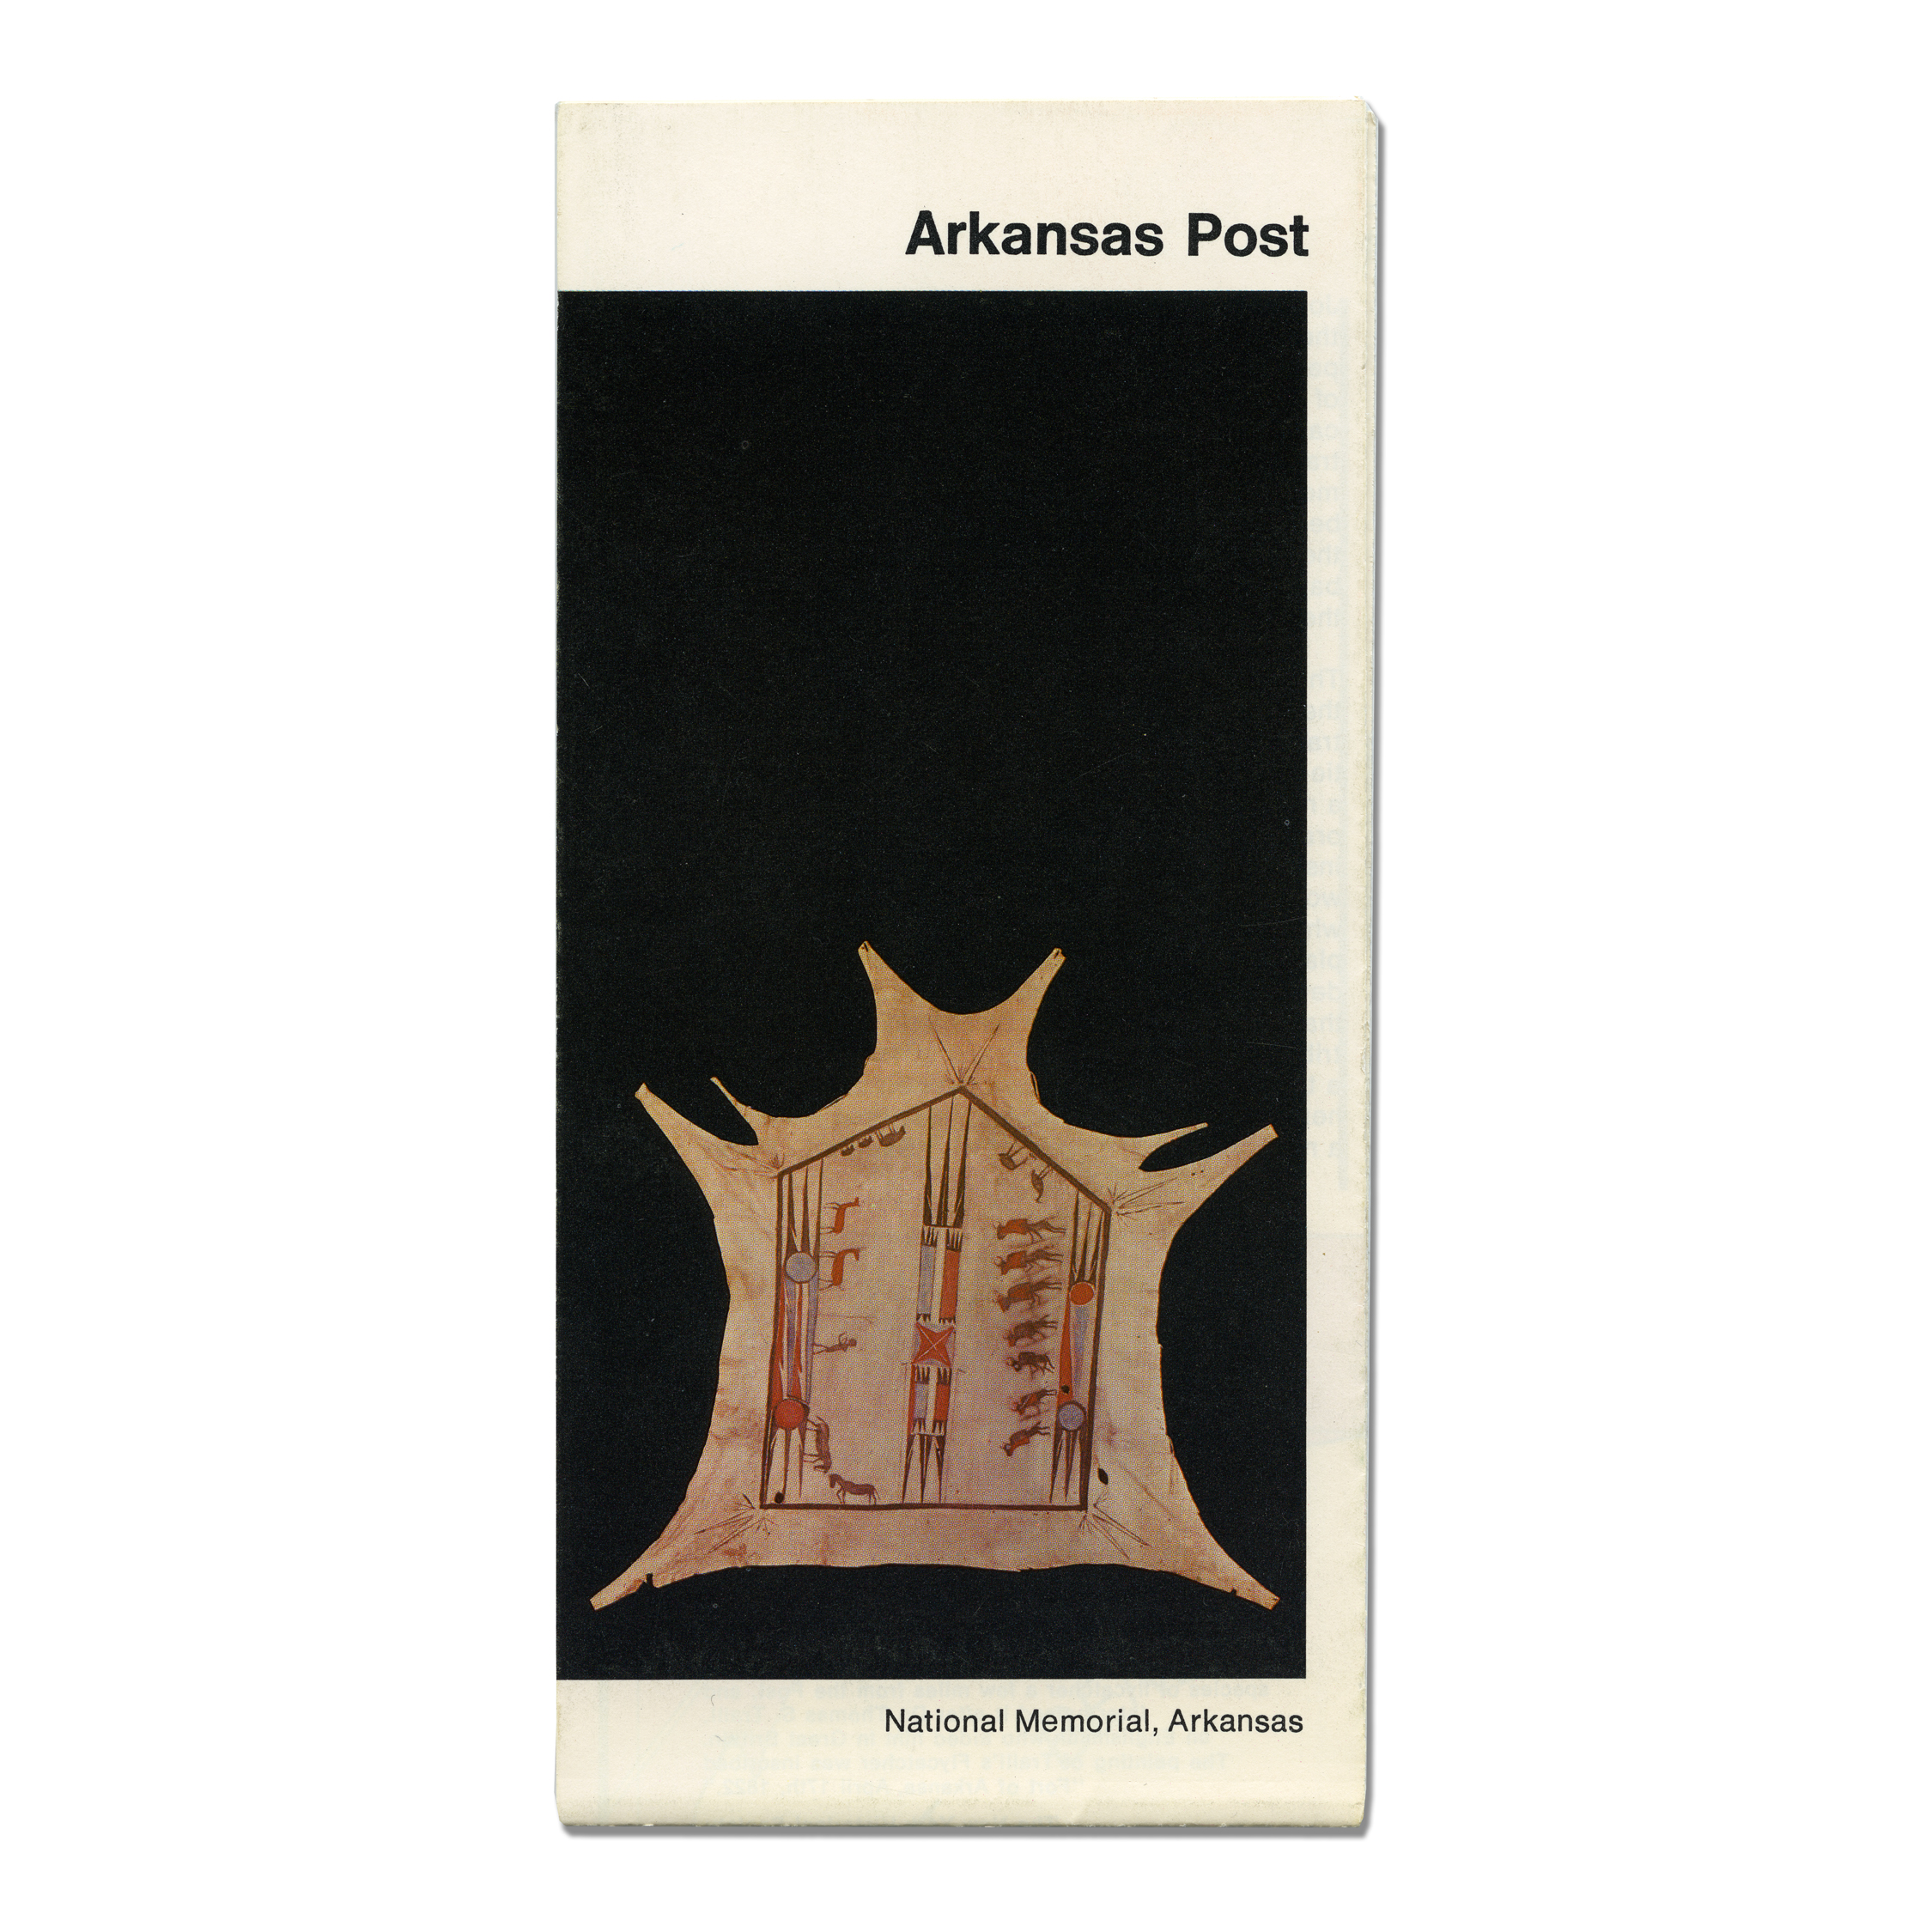 1975_arkansas_post_national_memorial_brochure.jpg